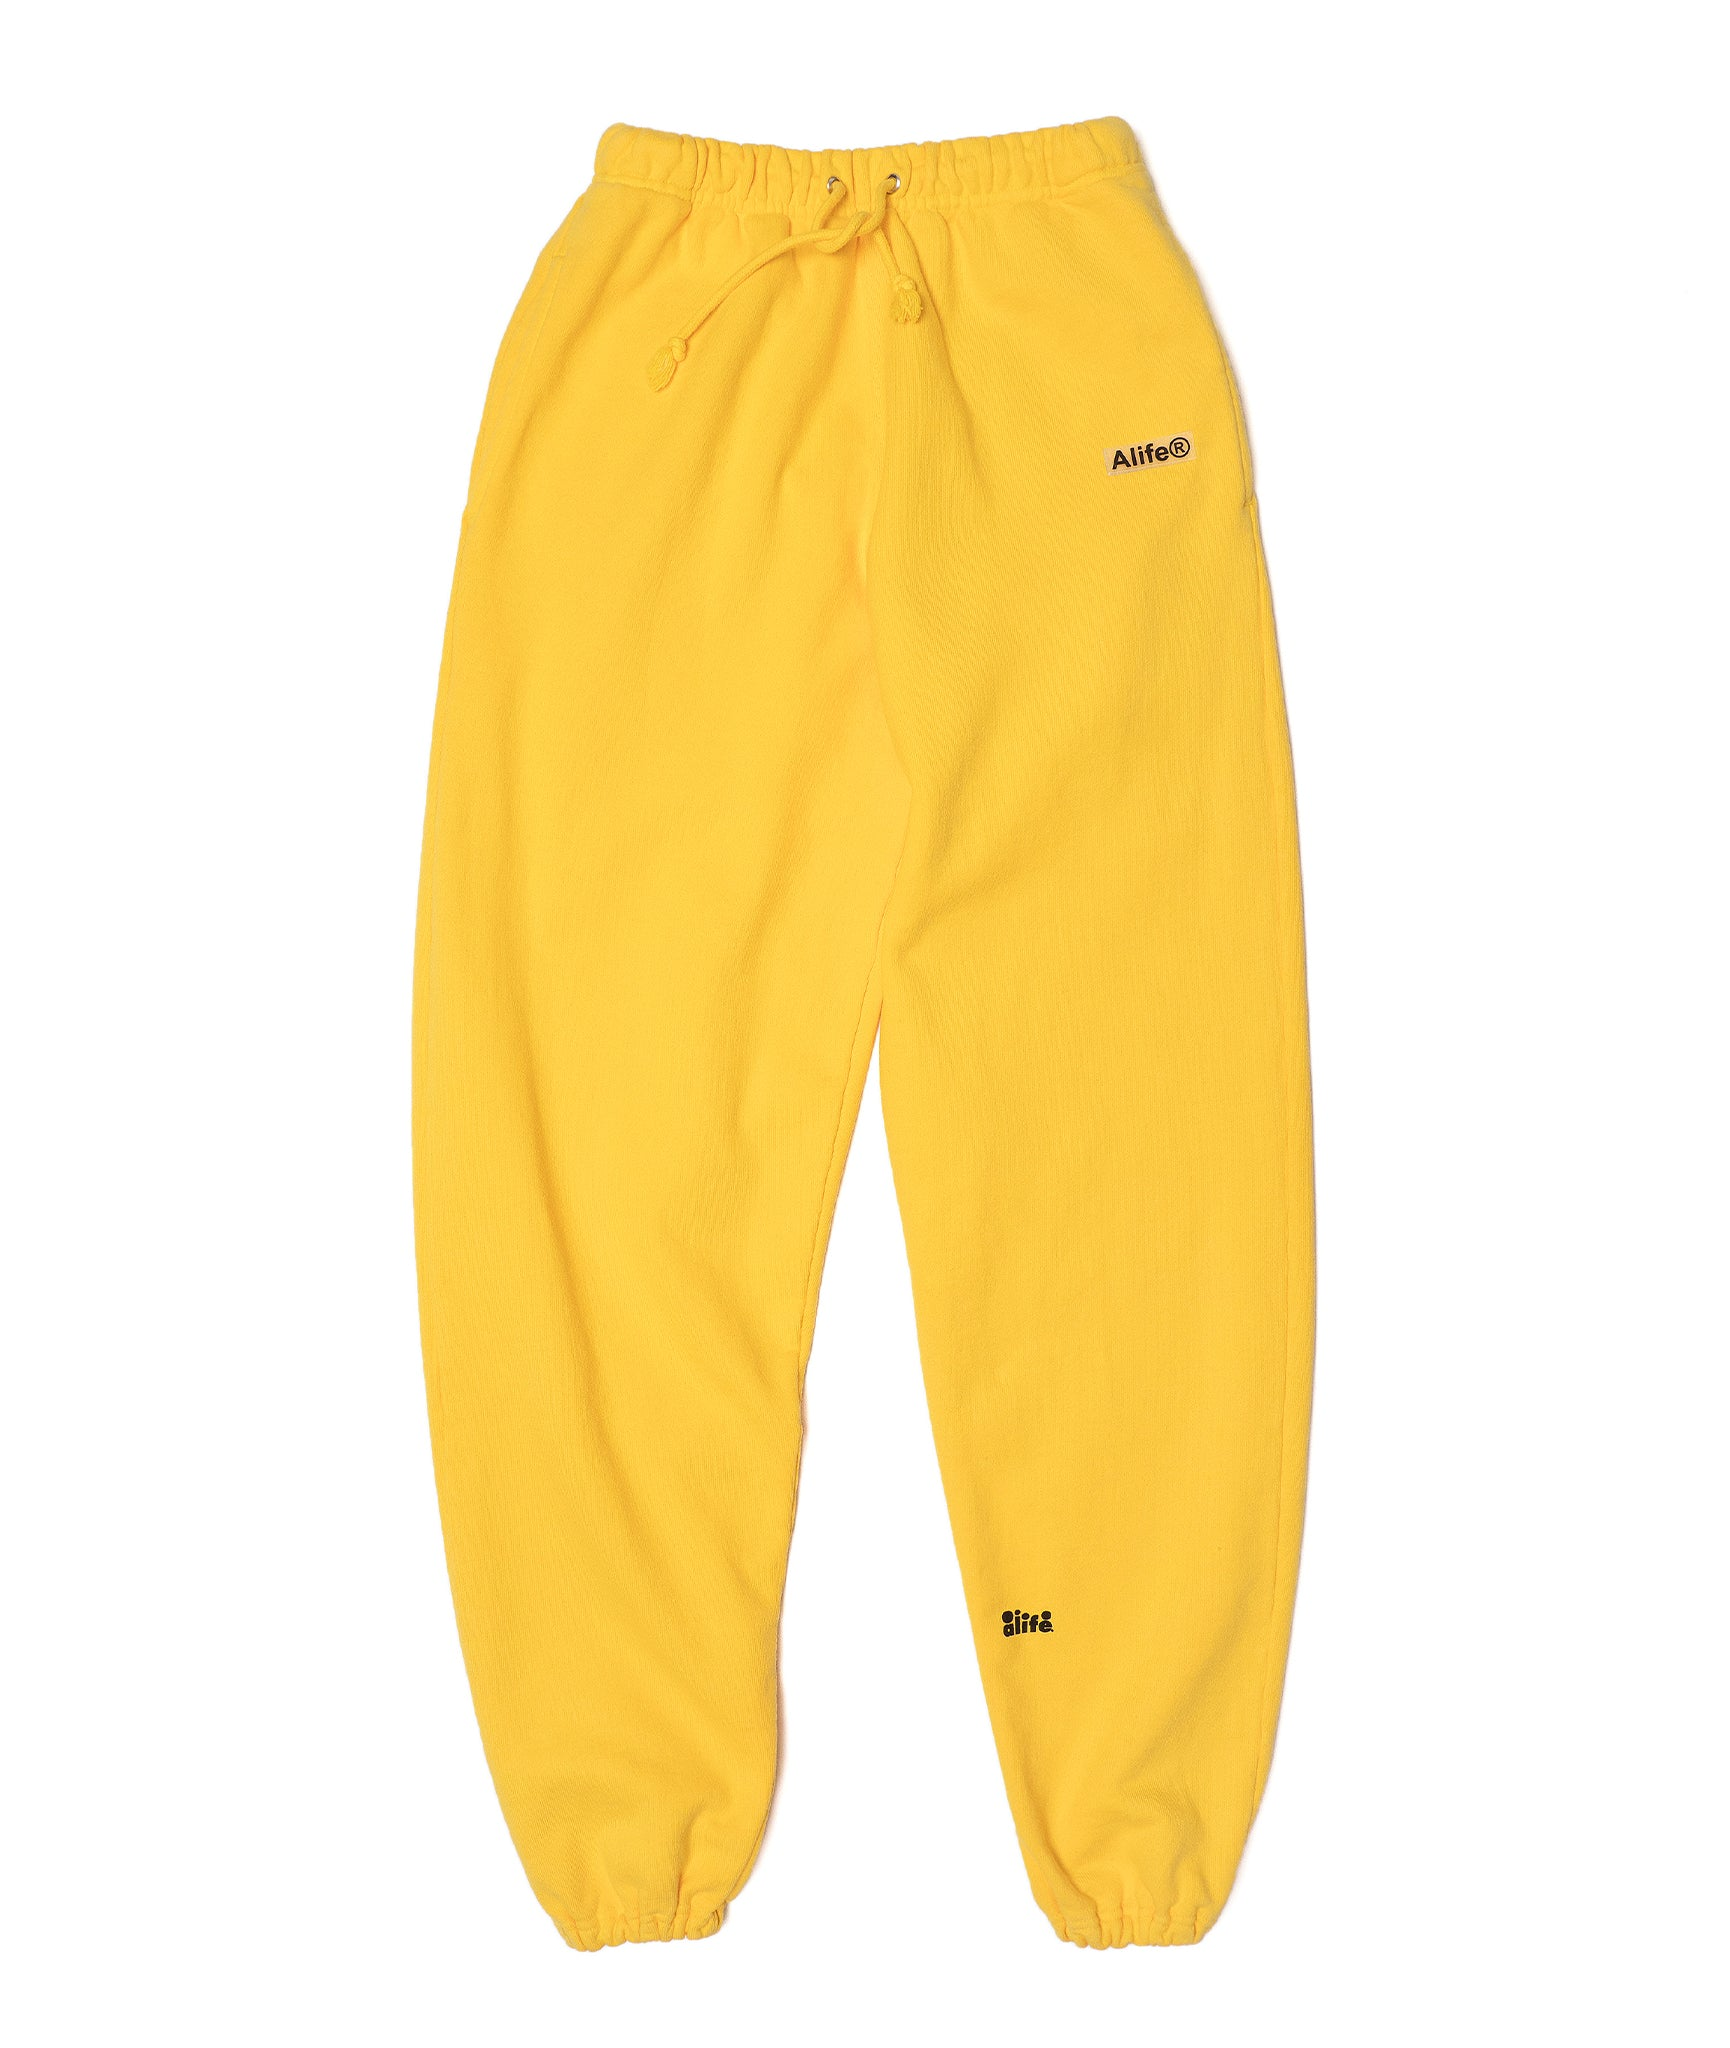 Alife Rubber Patch Sweatpant